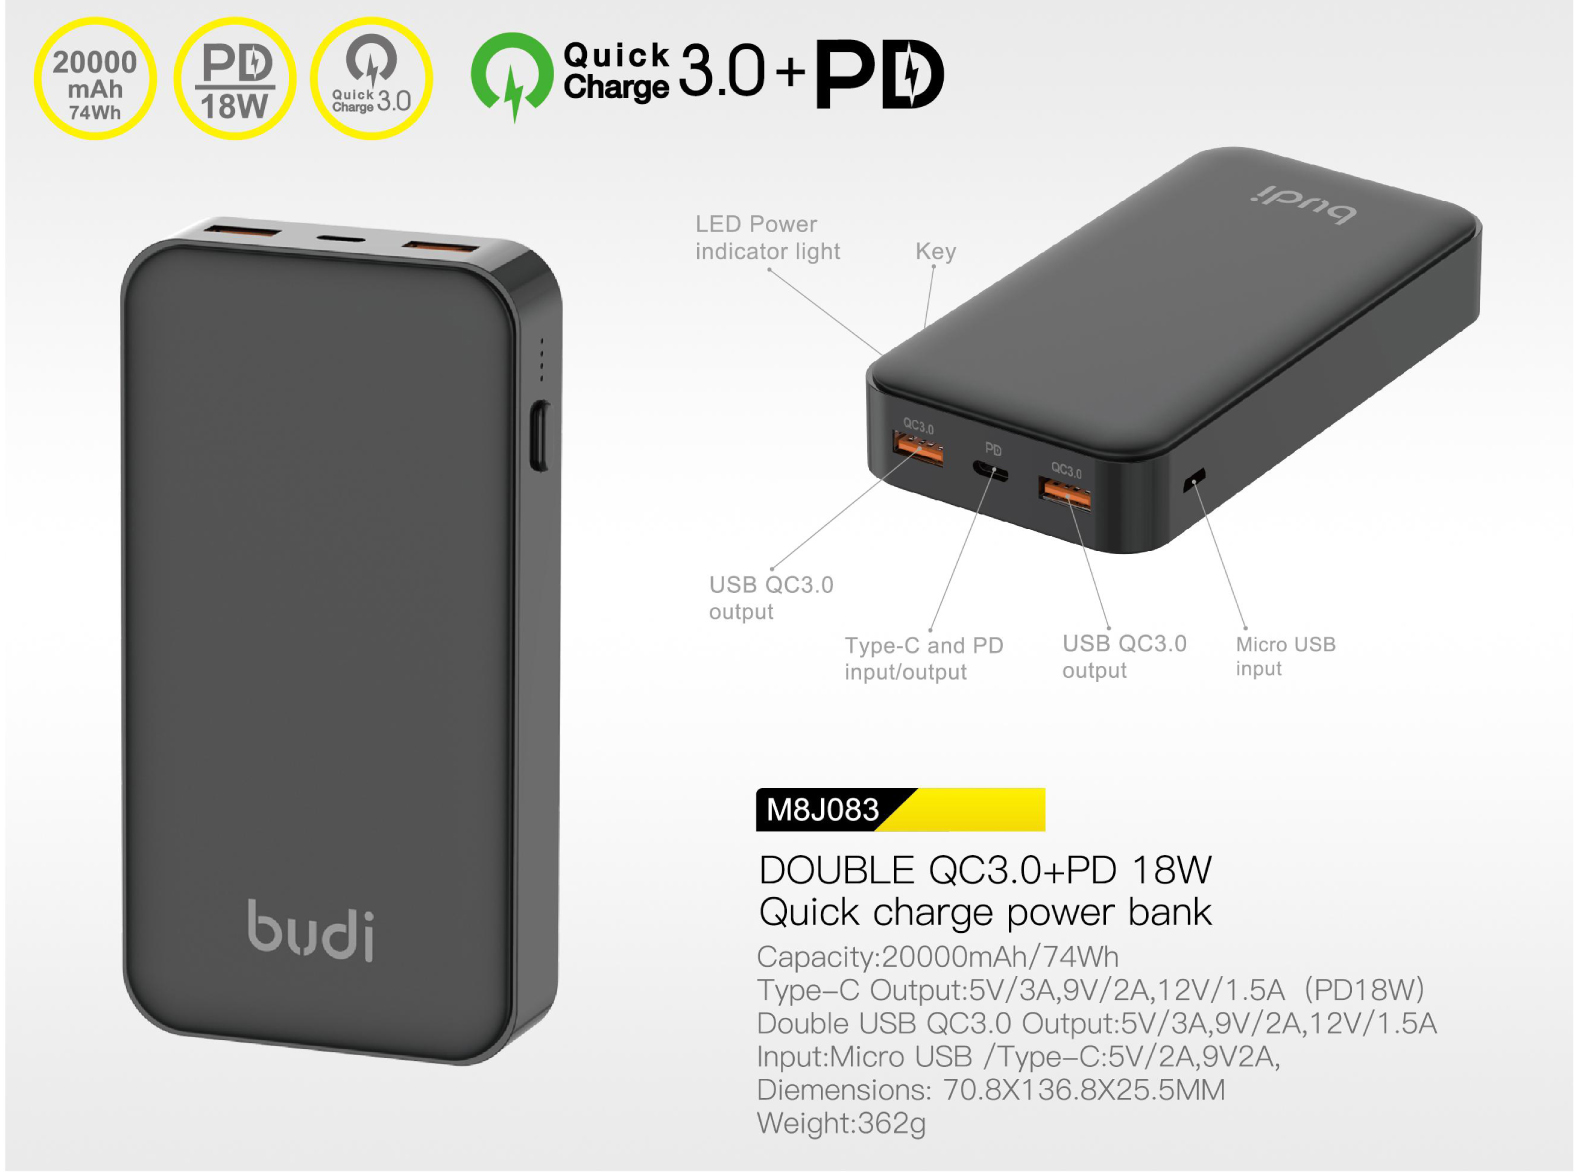 budi portable Quick Charge QC3.0 PD 18W Slim 10000mah powerbank support USB QC3.0 output and type-c PD input/output